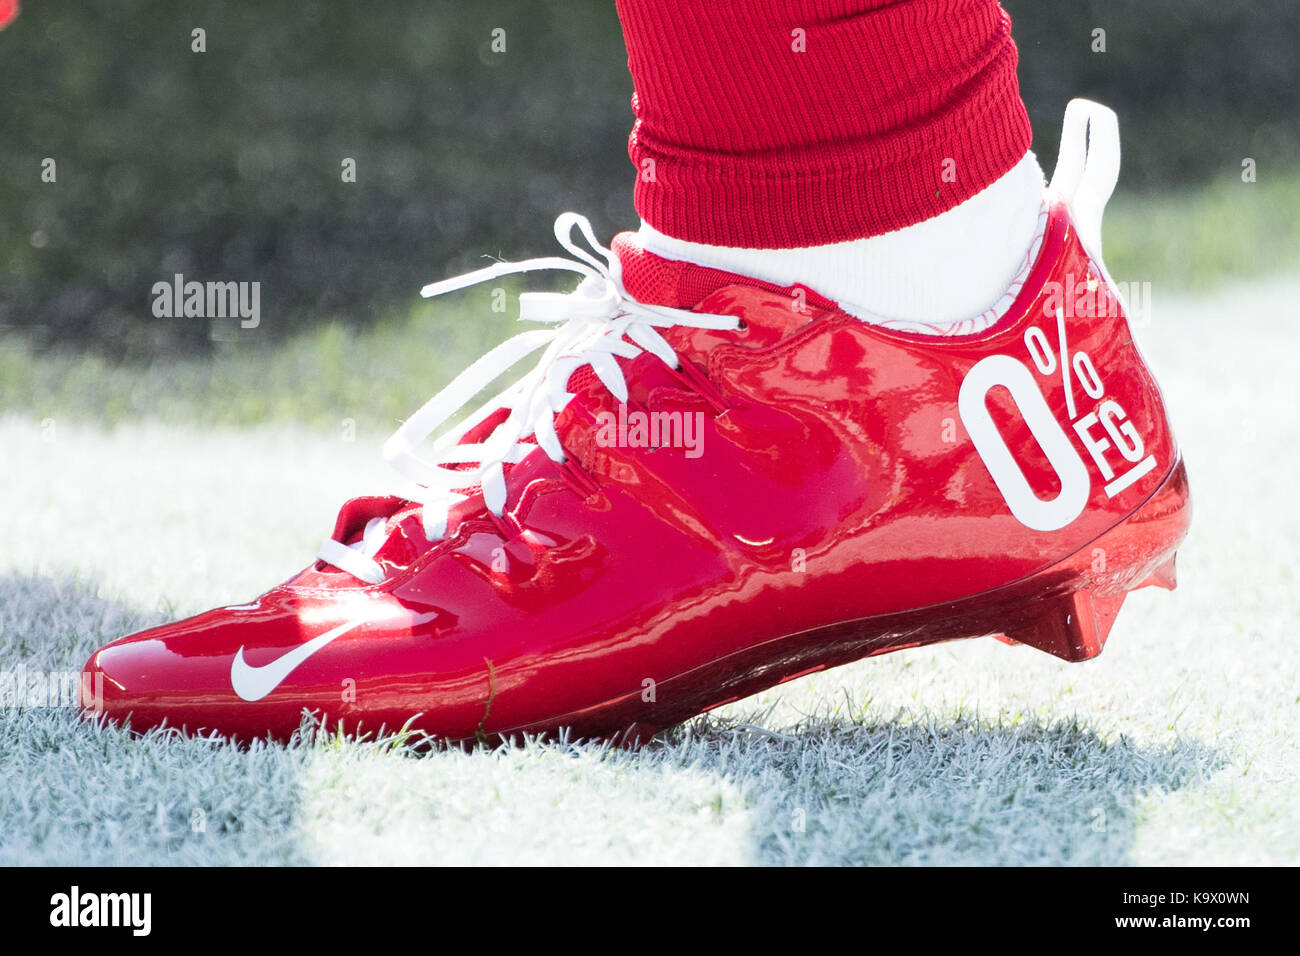 Odell Beckham Stock Photos & Odell Beckham Stock Images - Page 3 - Alamy